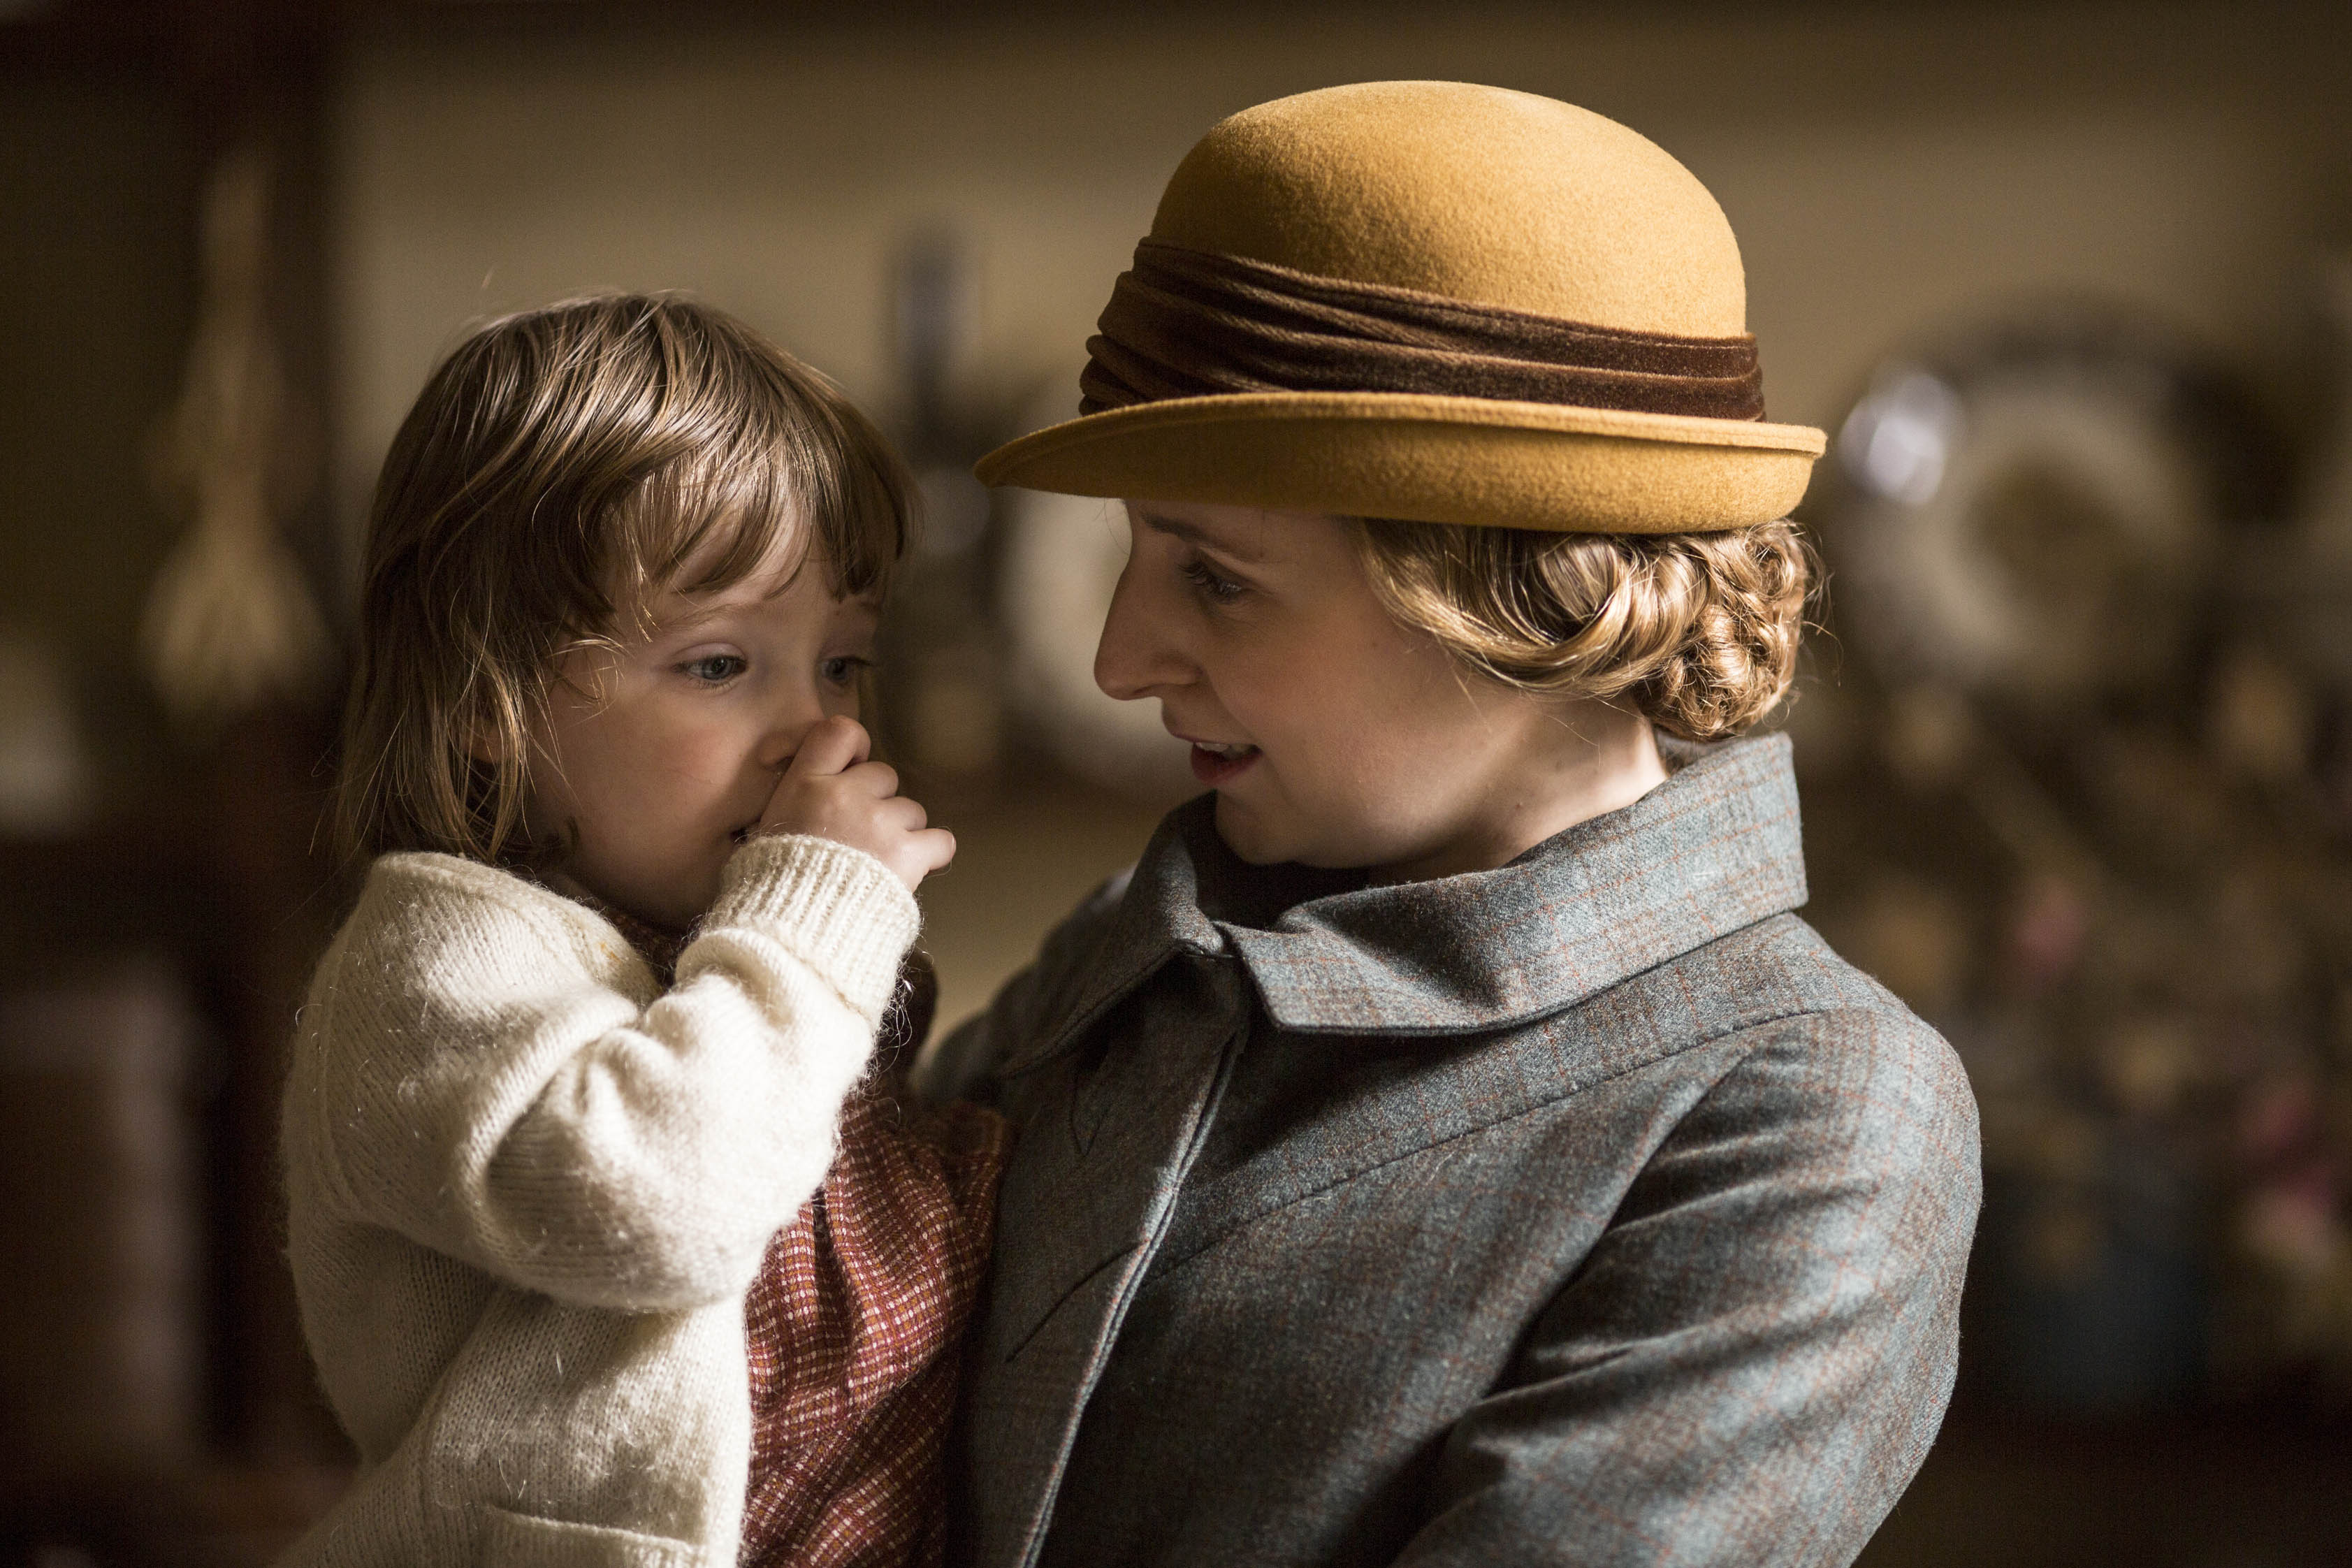 Downton Abbey, season 5, episode 2: Lady Edith